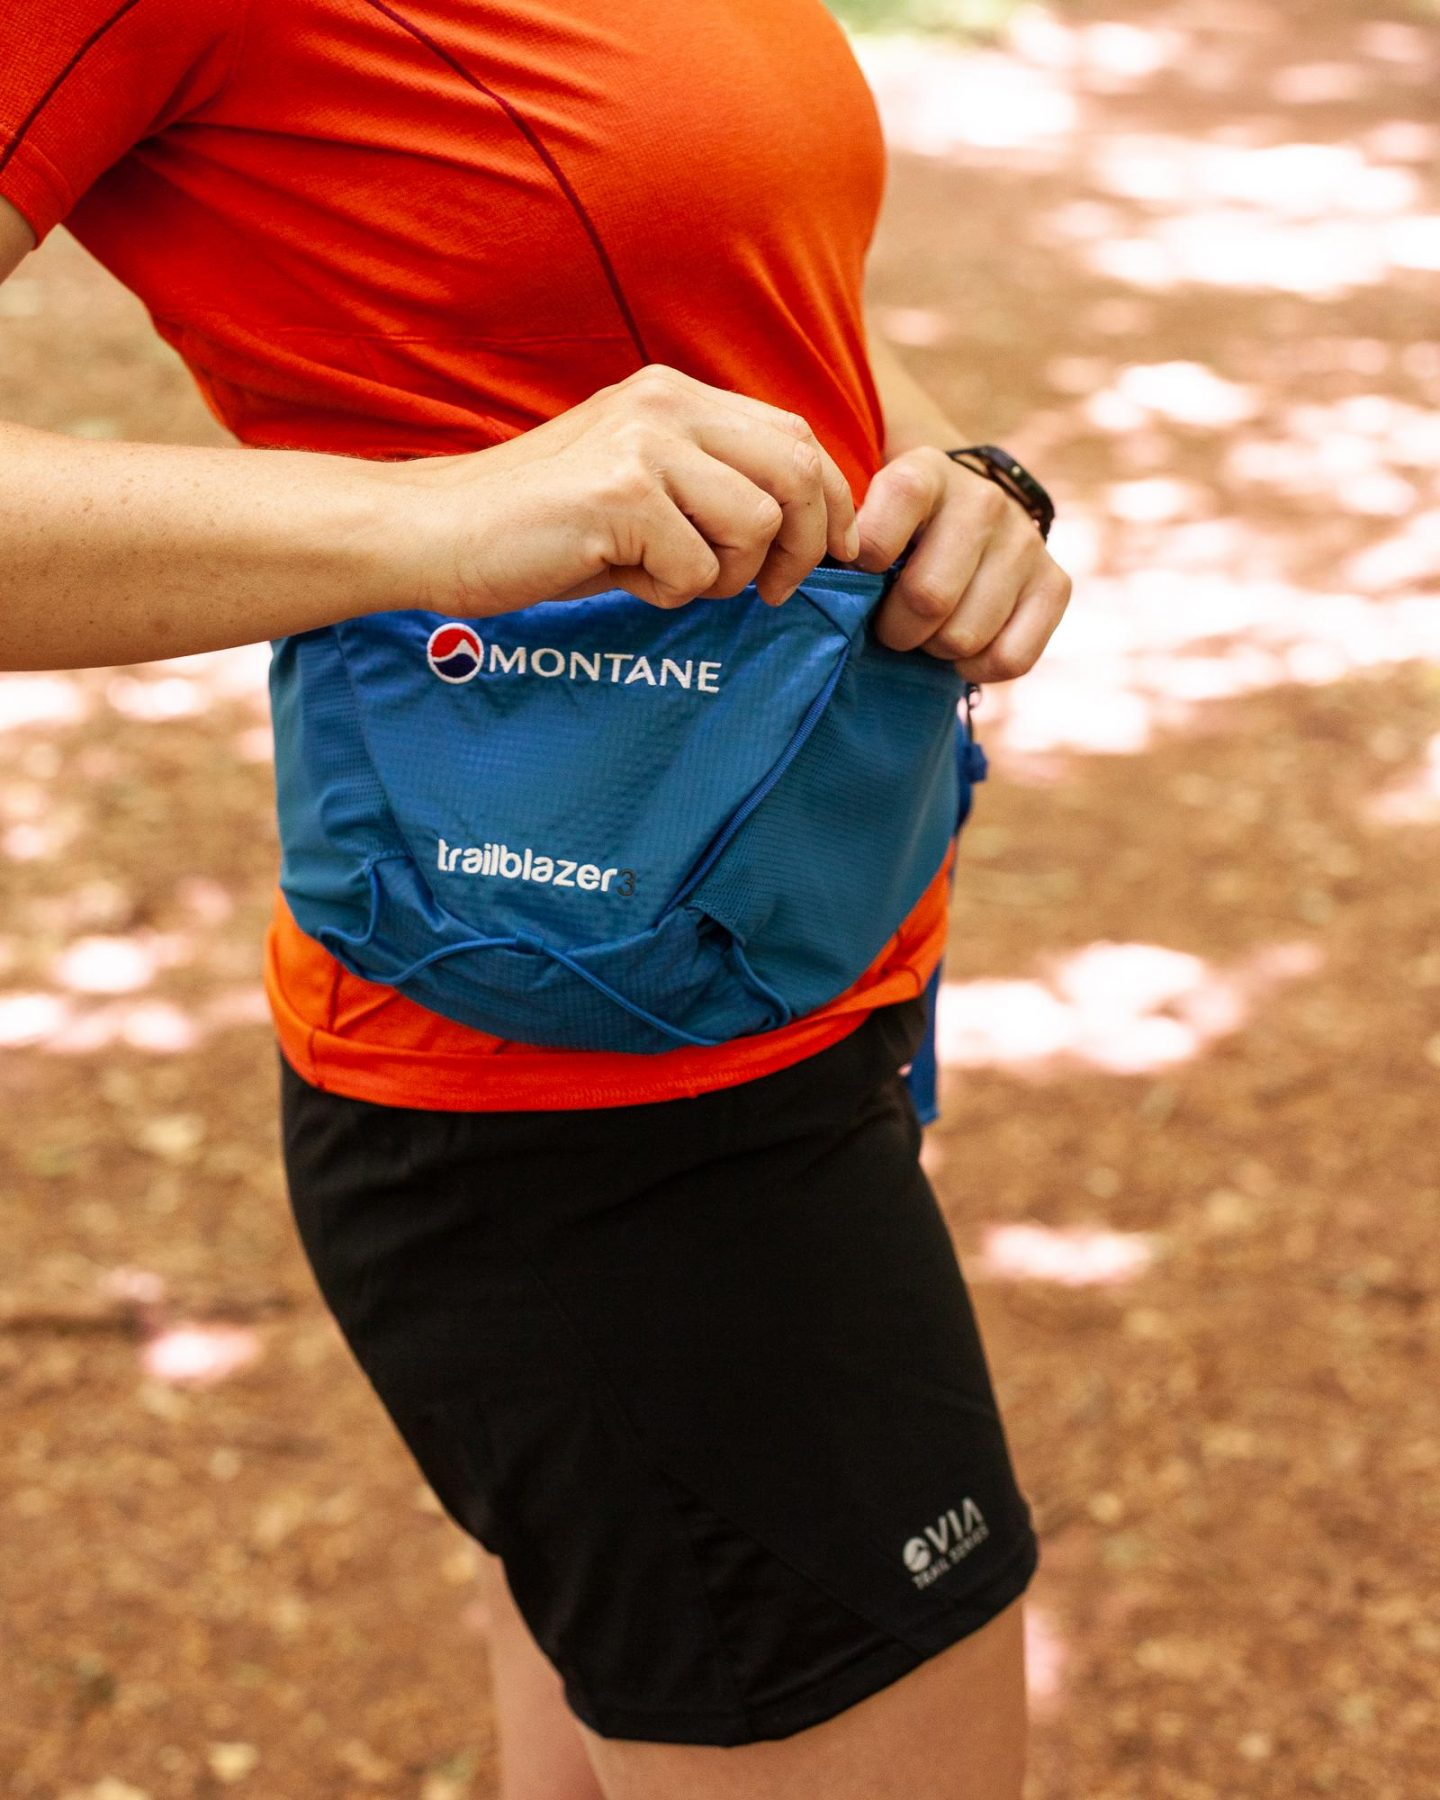 Montane Trail Running Kit Review